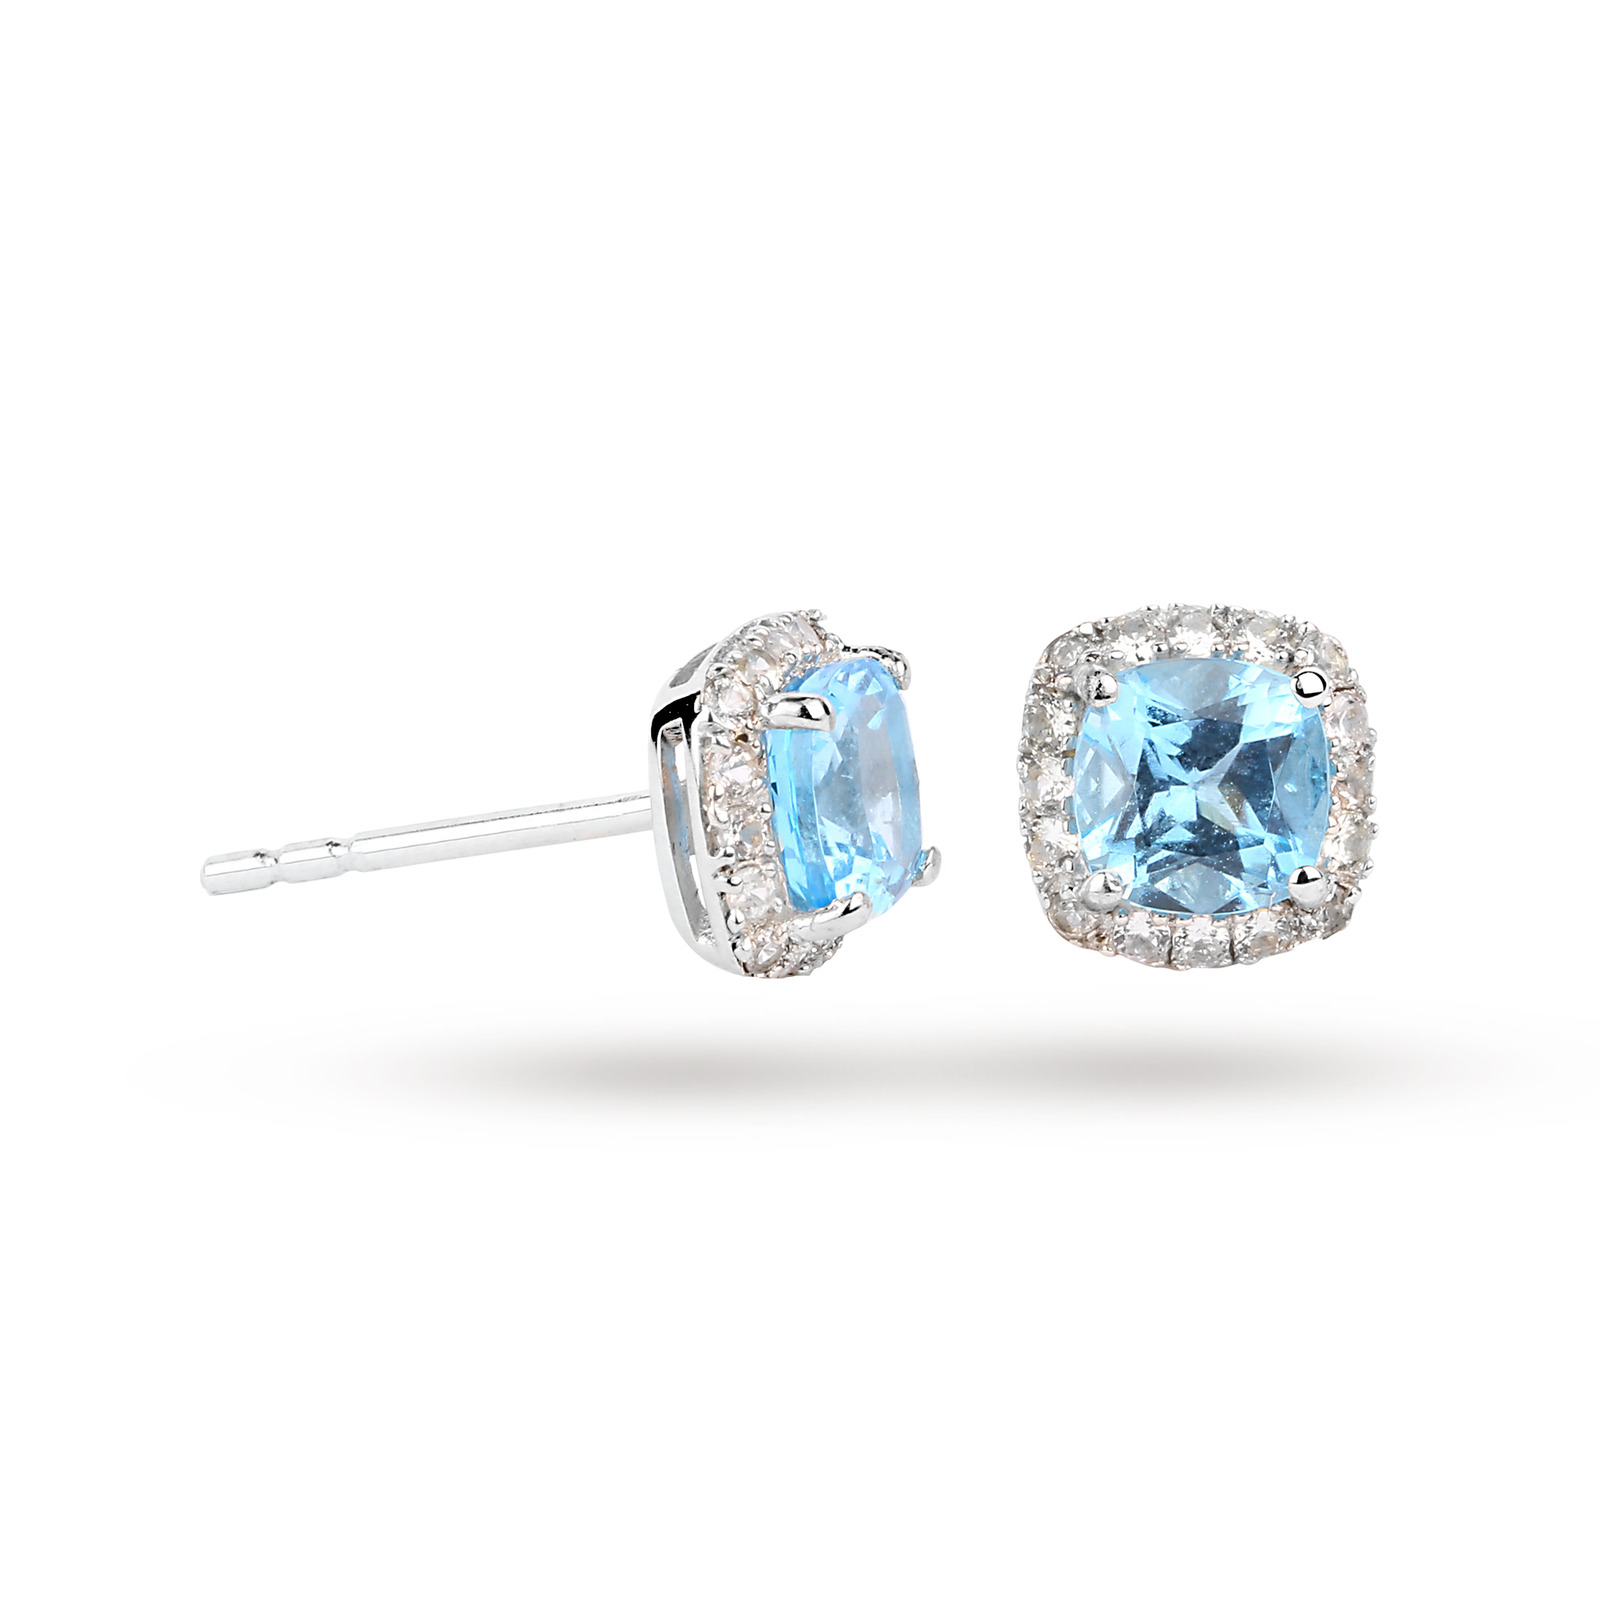 island stud rains sky tacori blue collection bl earrings std topaz errngs tpz